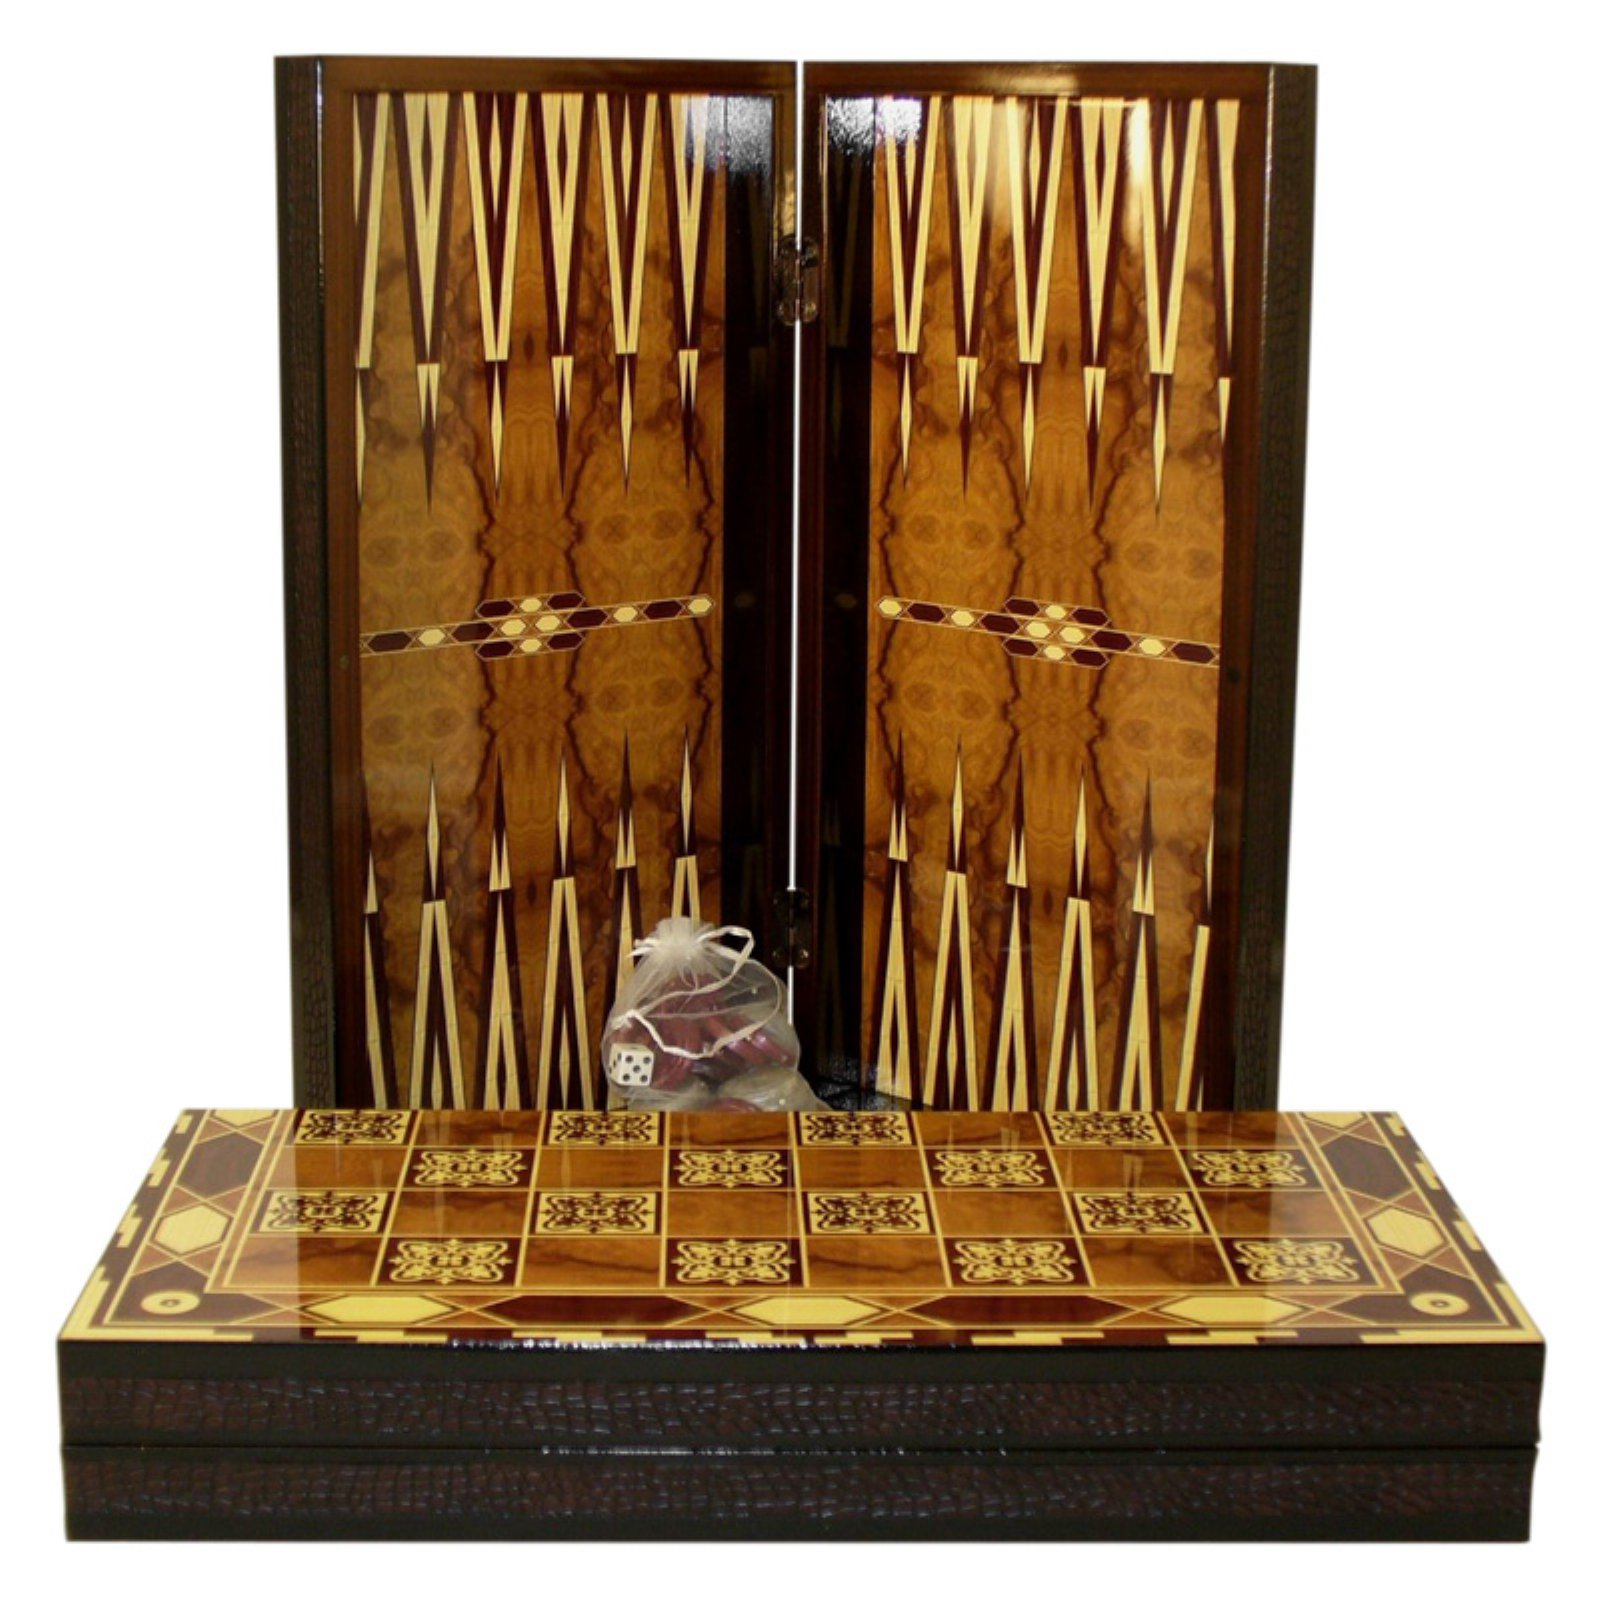 Marrakesh Design Backgammon Set with Chess Board